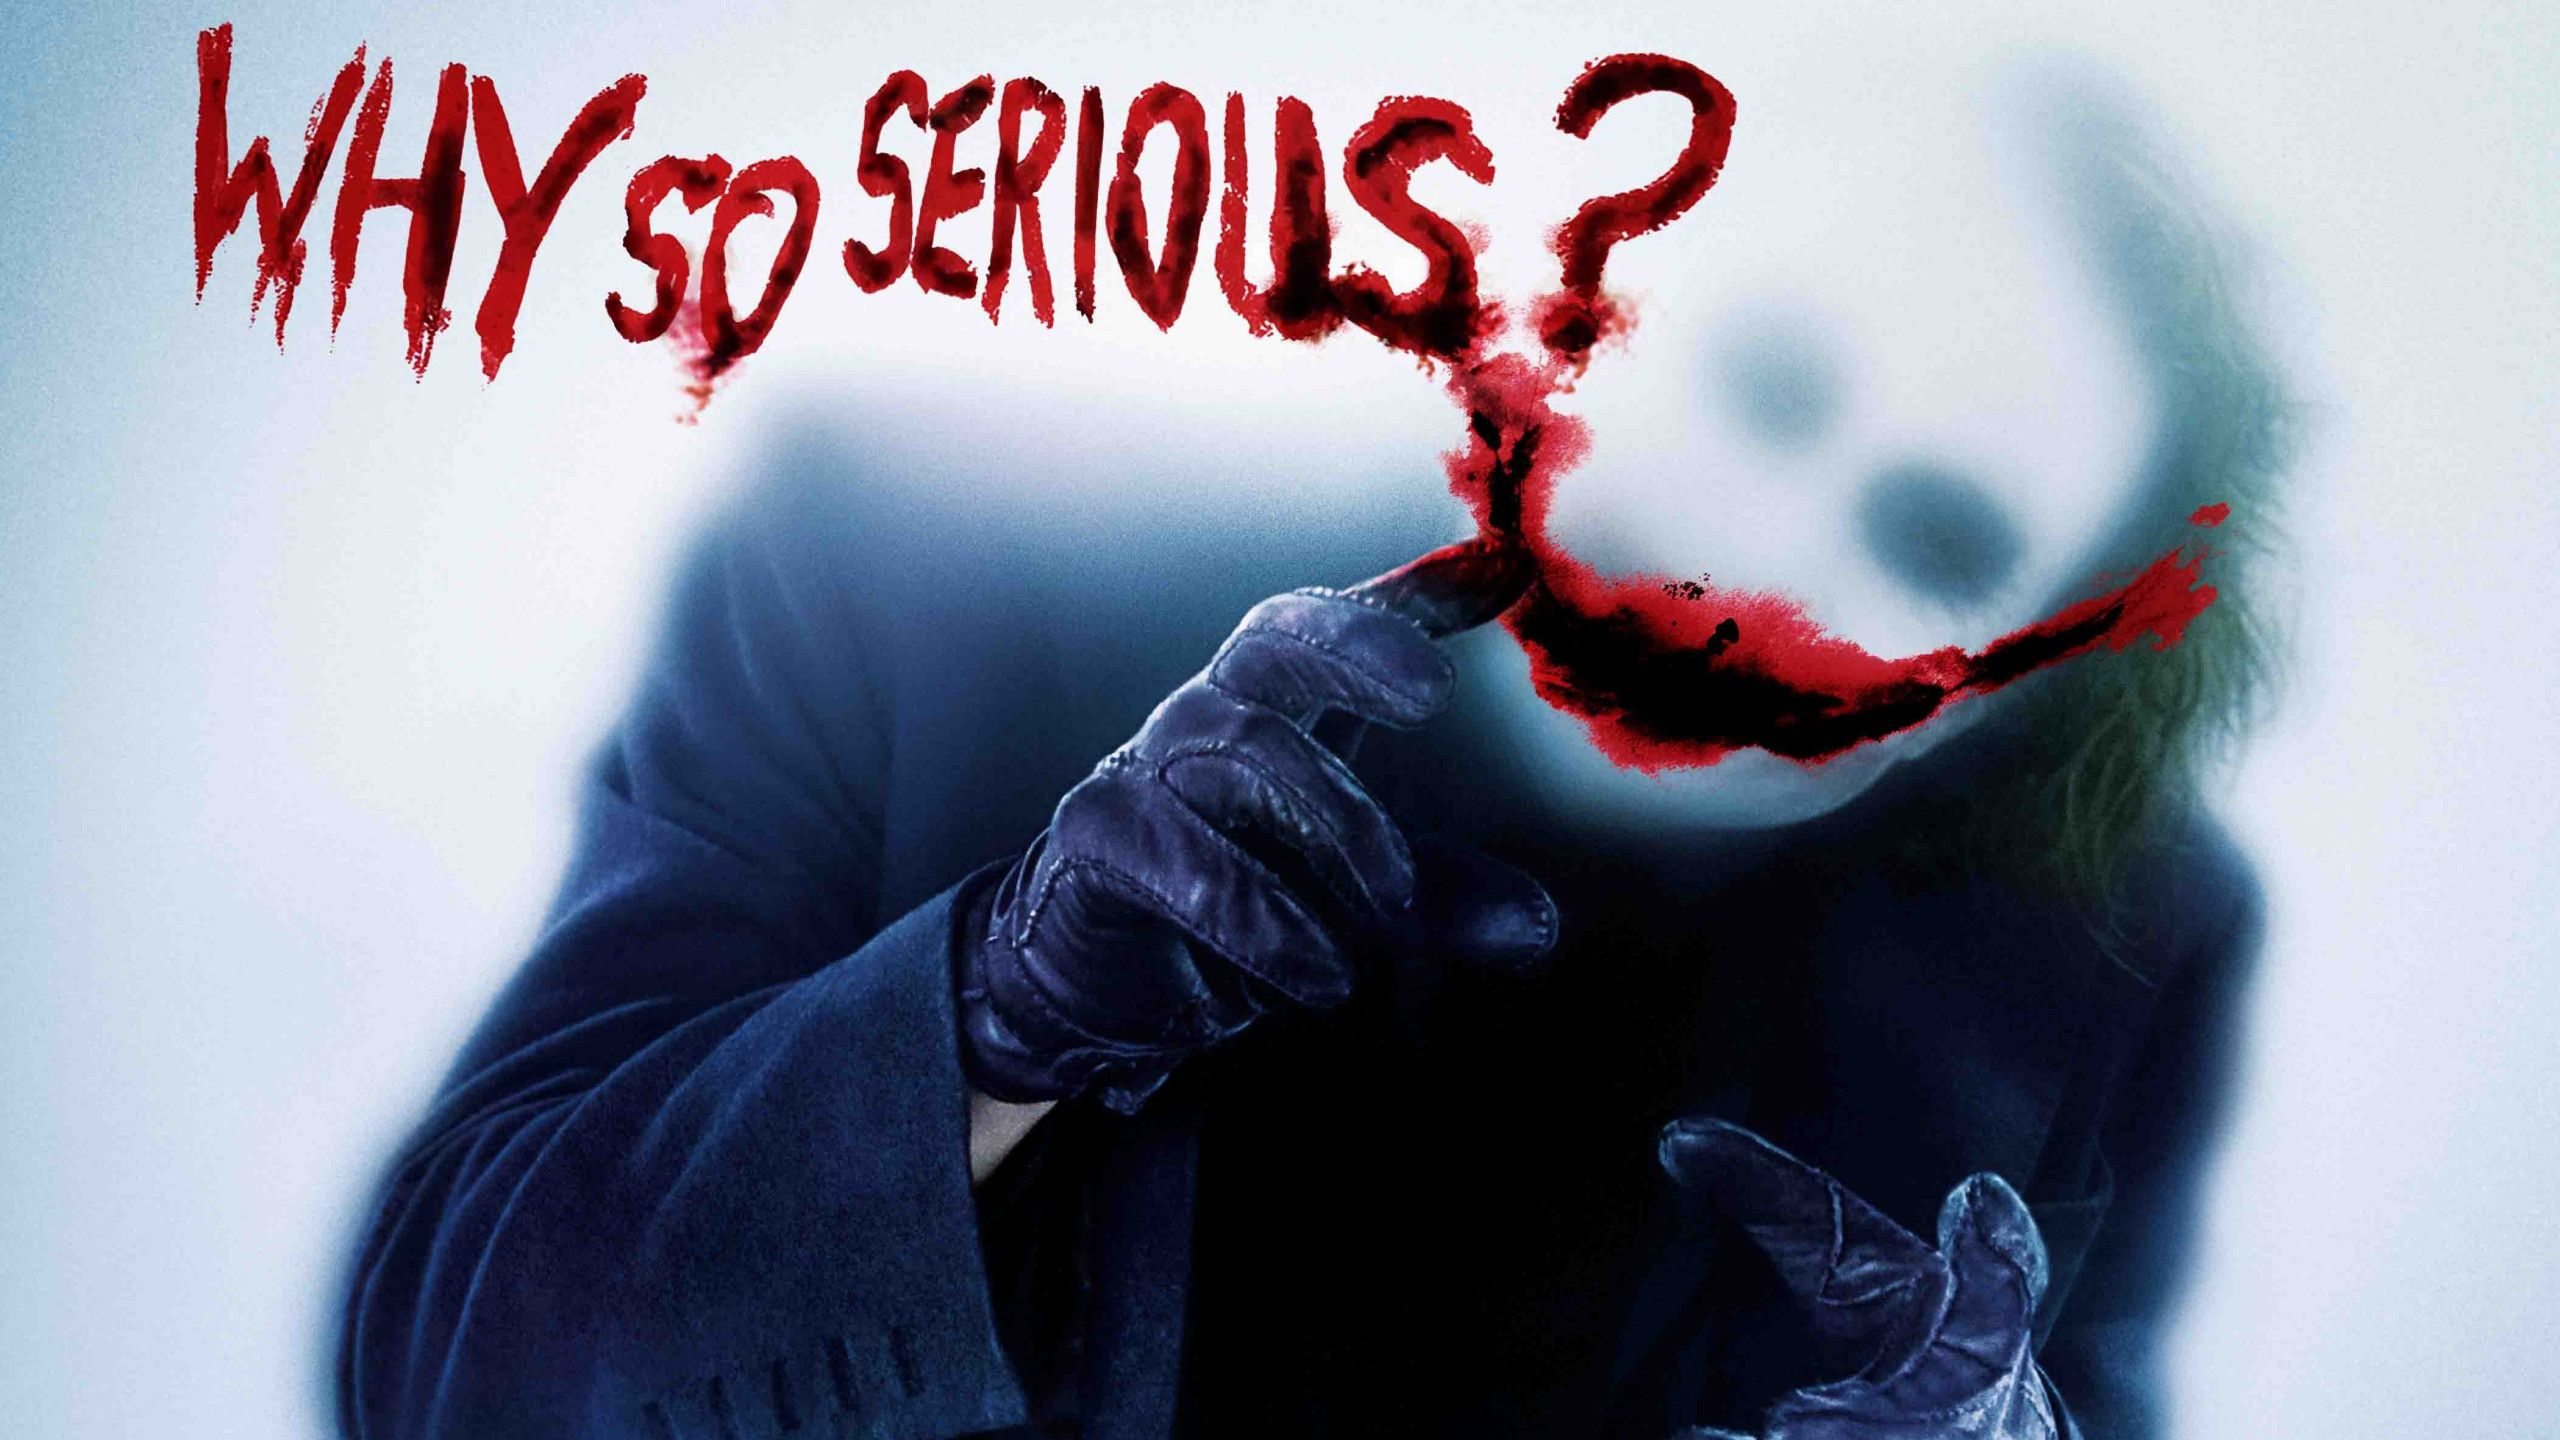 Why So Serious Wallpapers Wallpaper Cave